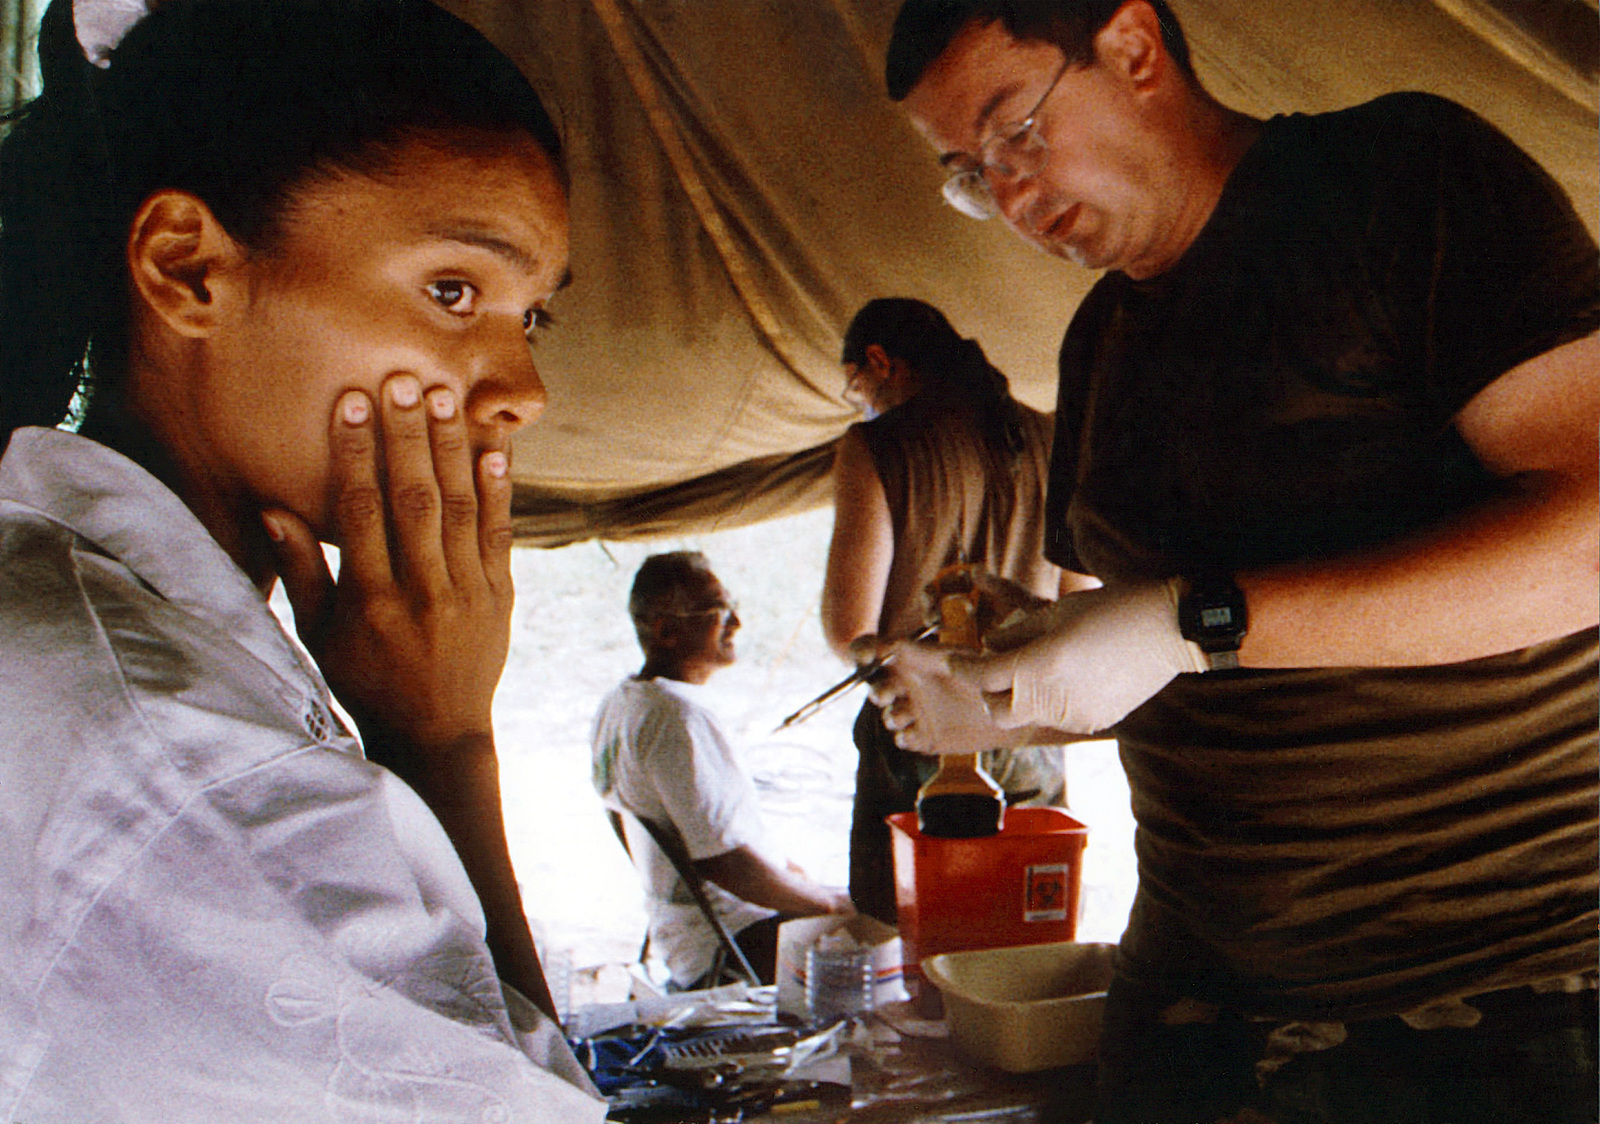 Military Photographer of the Year Winner 1997 Title: Painful Anticipation Category: News; Portfolio Place: 3rd Place News; 3rd Place Portfolio Caption: A young girl, and local resident of Malali, Guyana, is about to get her tooth extracted by Major Pete Krafcisin, a dentist assigned to the 126th Medical Squadron, O'hare Field, Chicago, Illinois, at the site of a New Horizons medical aid tent on August 19, 1997. Medical technicians are providing aid to the local population in support of New Horizon 97, a humanitarian and medical readiness exercise